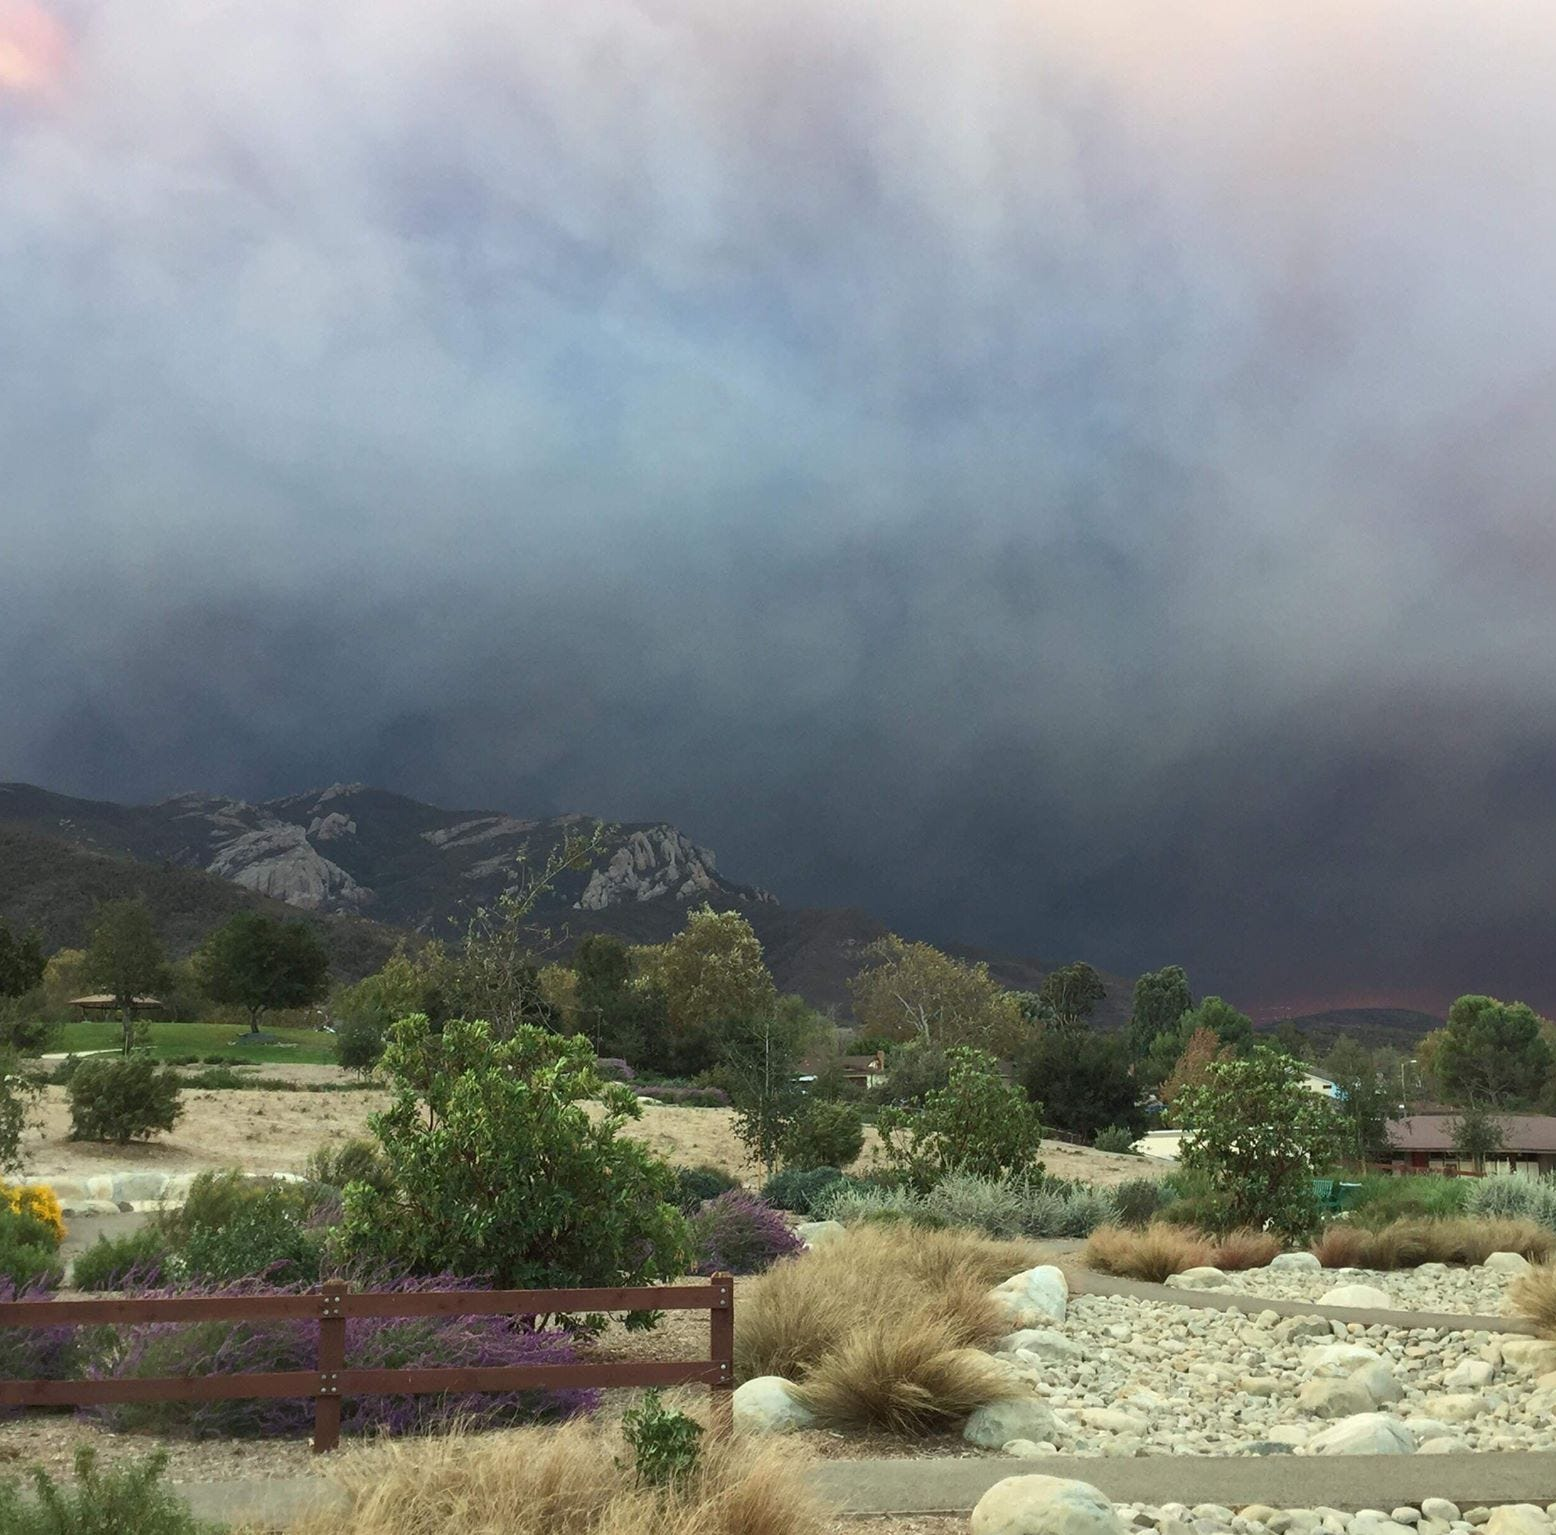 Public health emergency declared due to wildfires in Ventura County